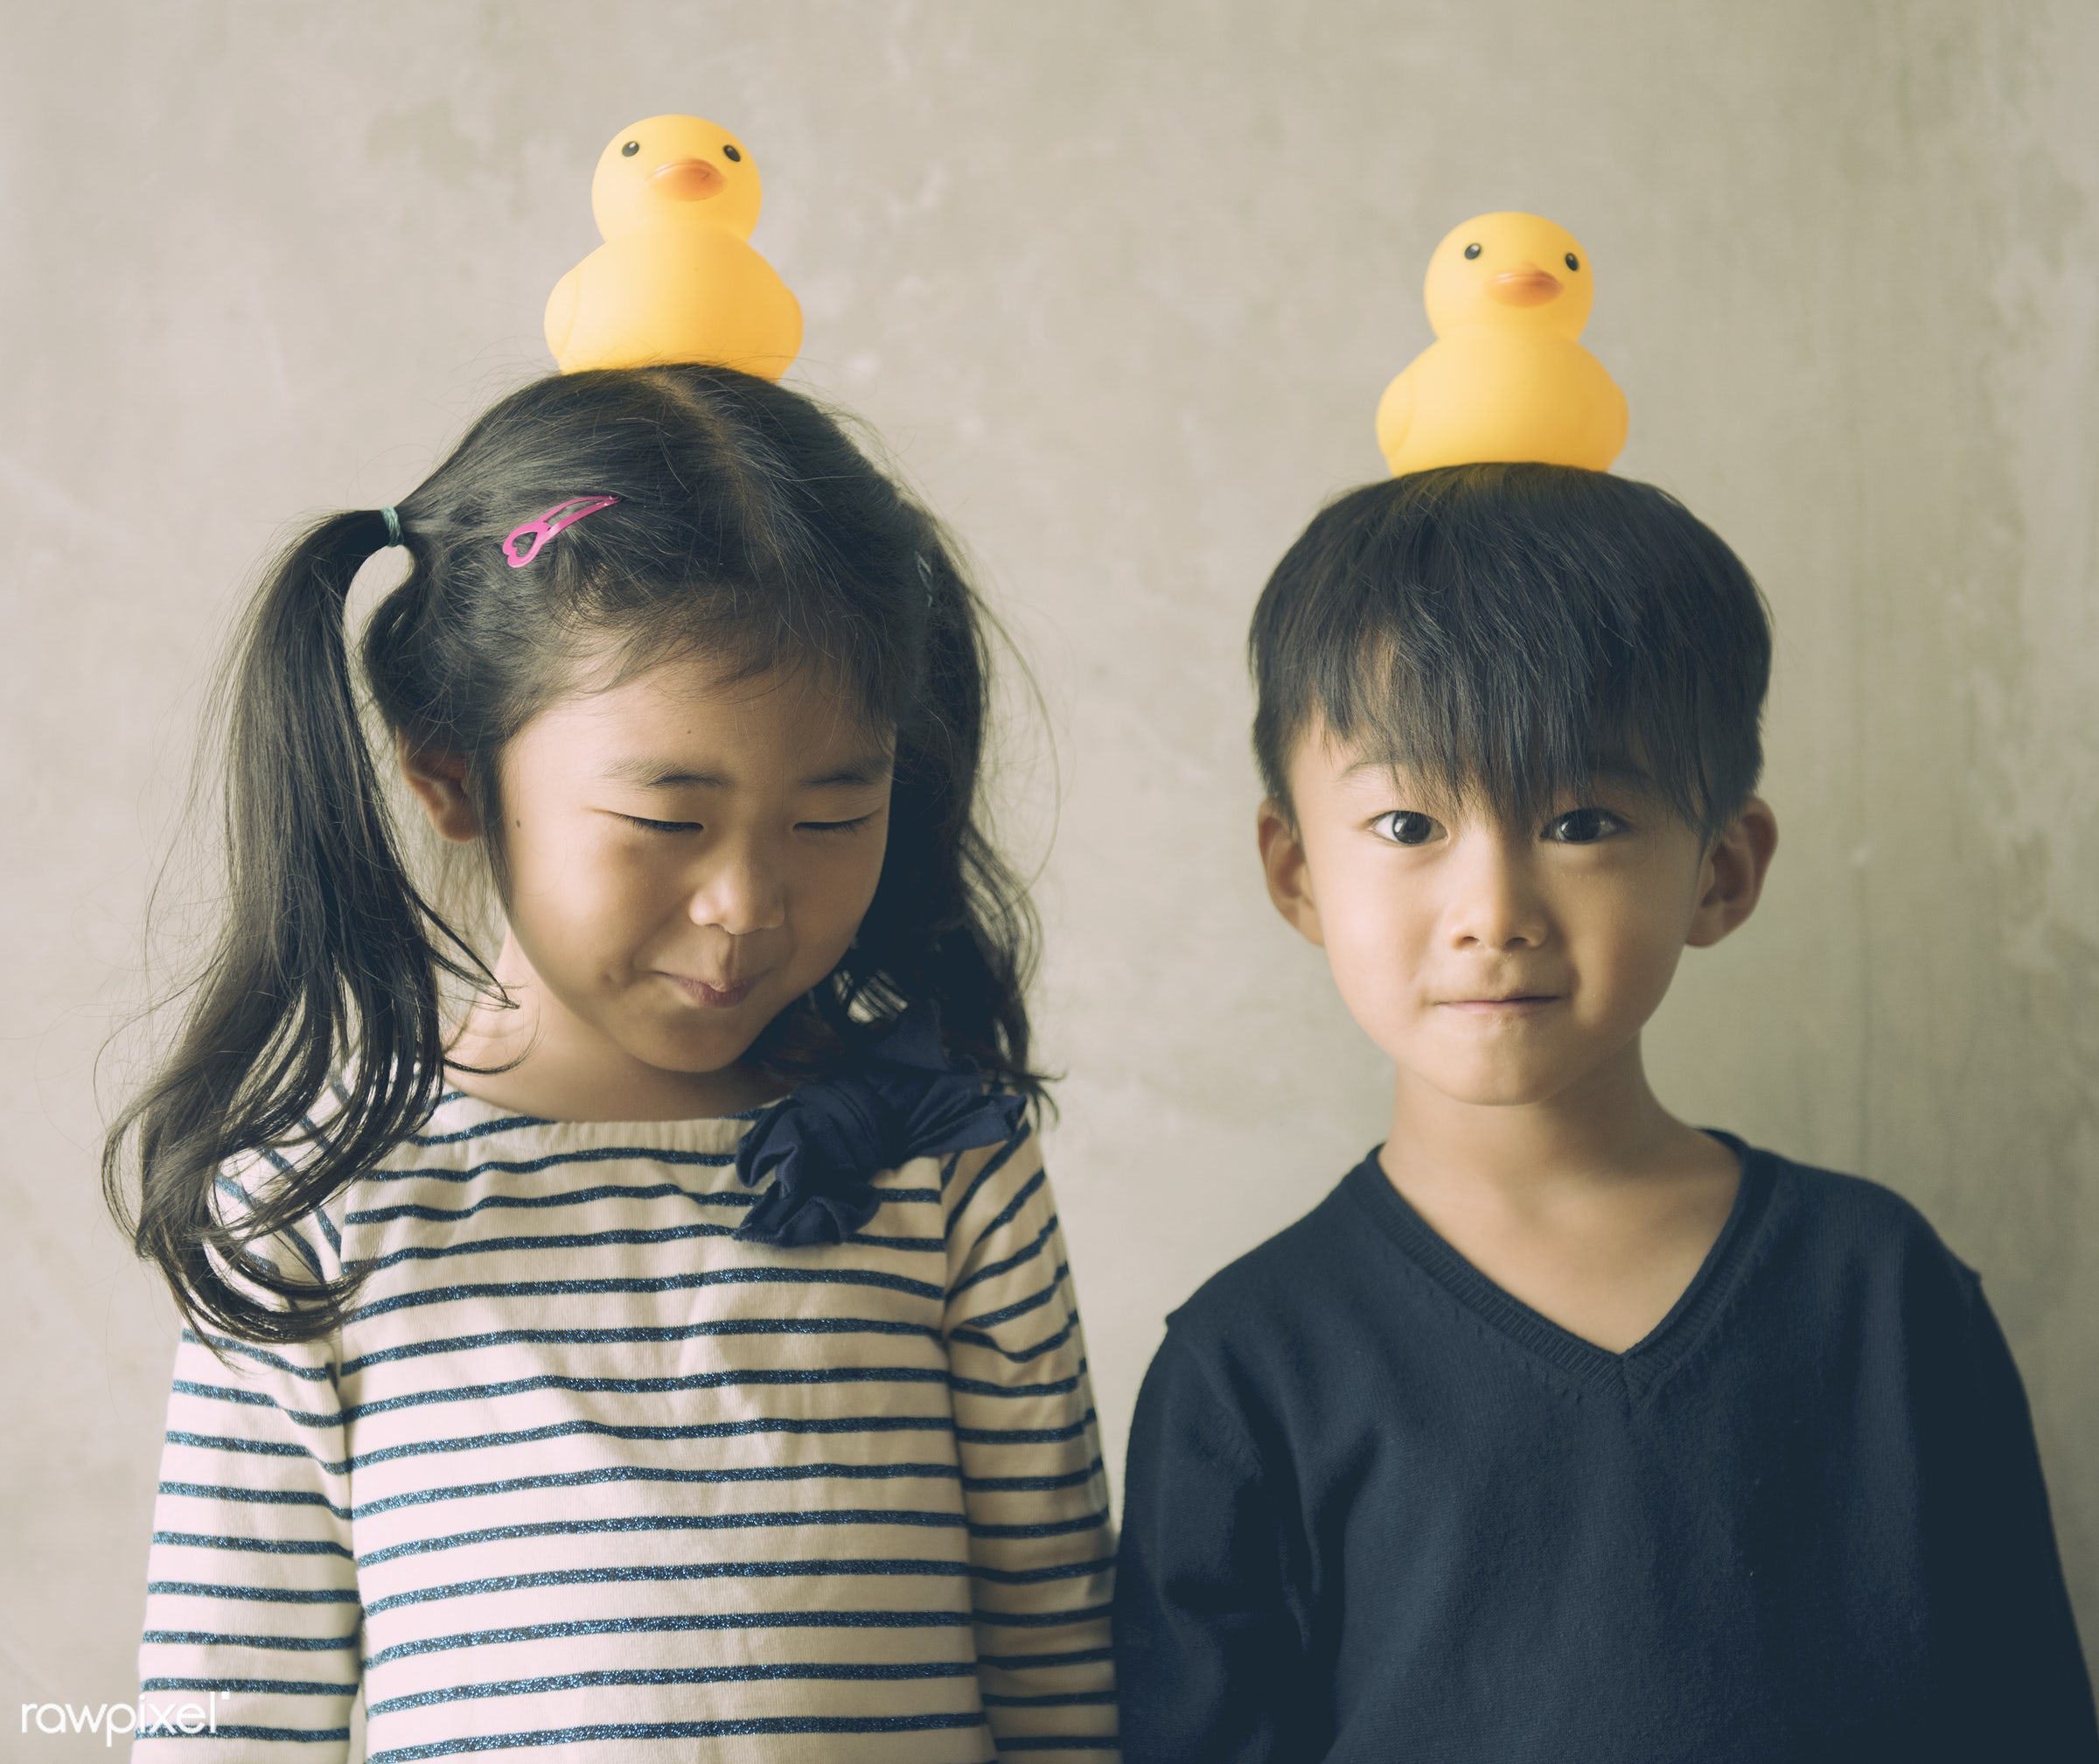 Japanese kids with rubber duckies on their heads - adorable, asia, asian, brother, casual, childhood, children, duck, family...